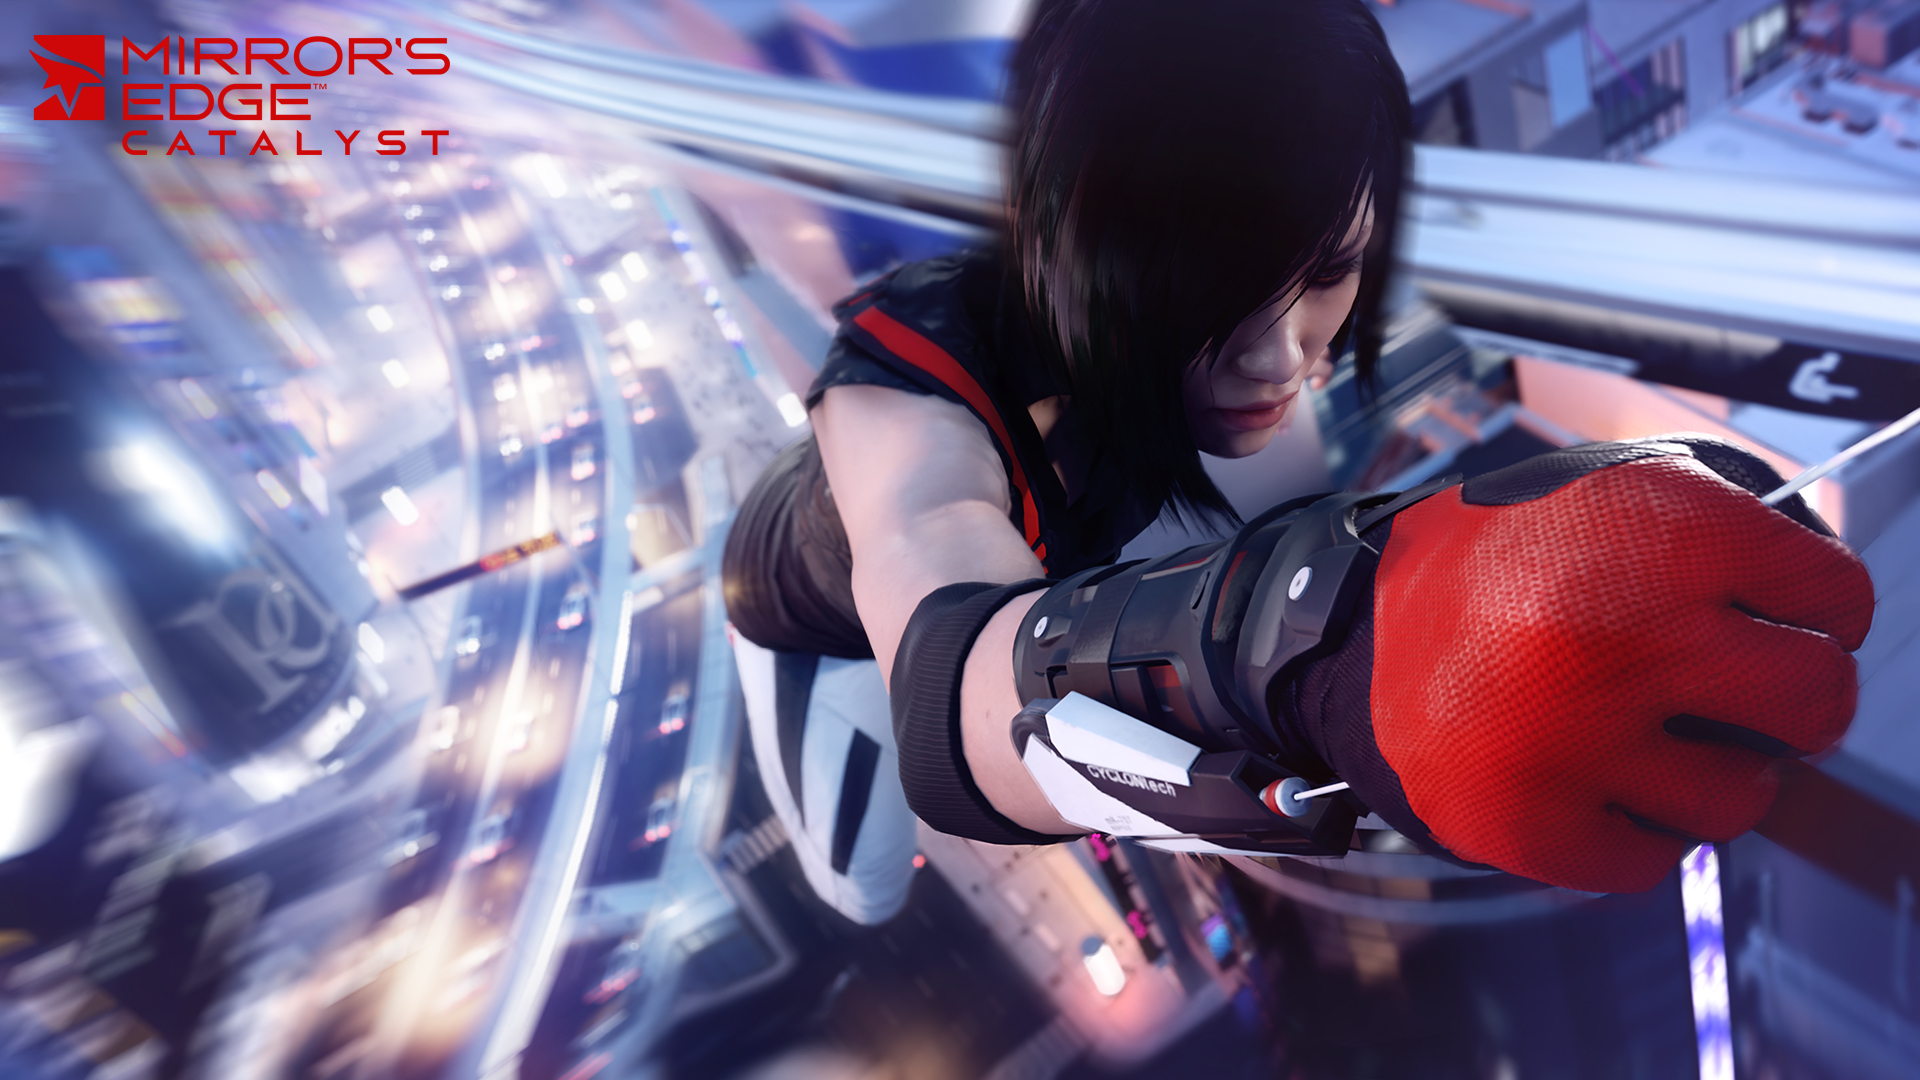 Mirror's Edge Catalyst delayed till May 2016